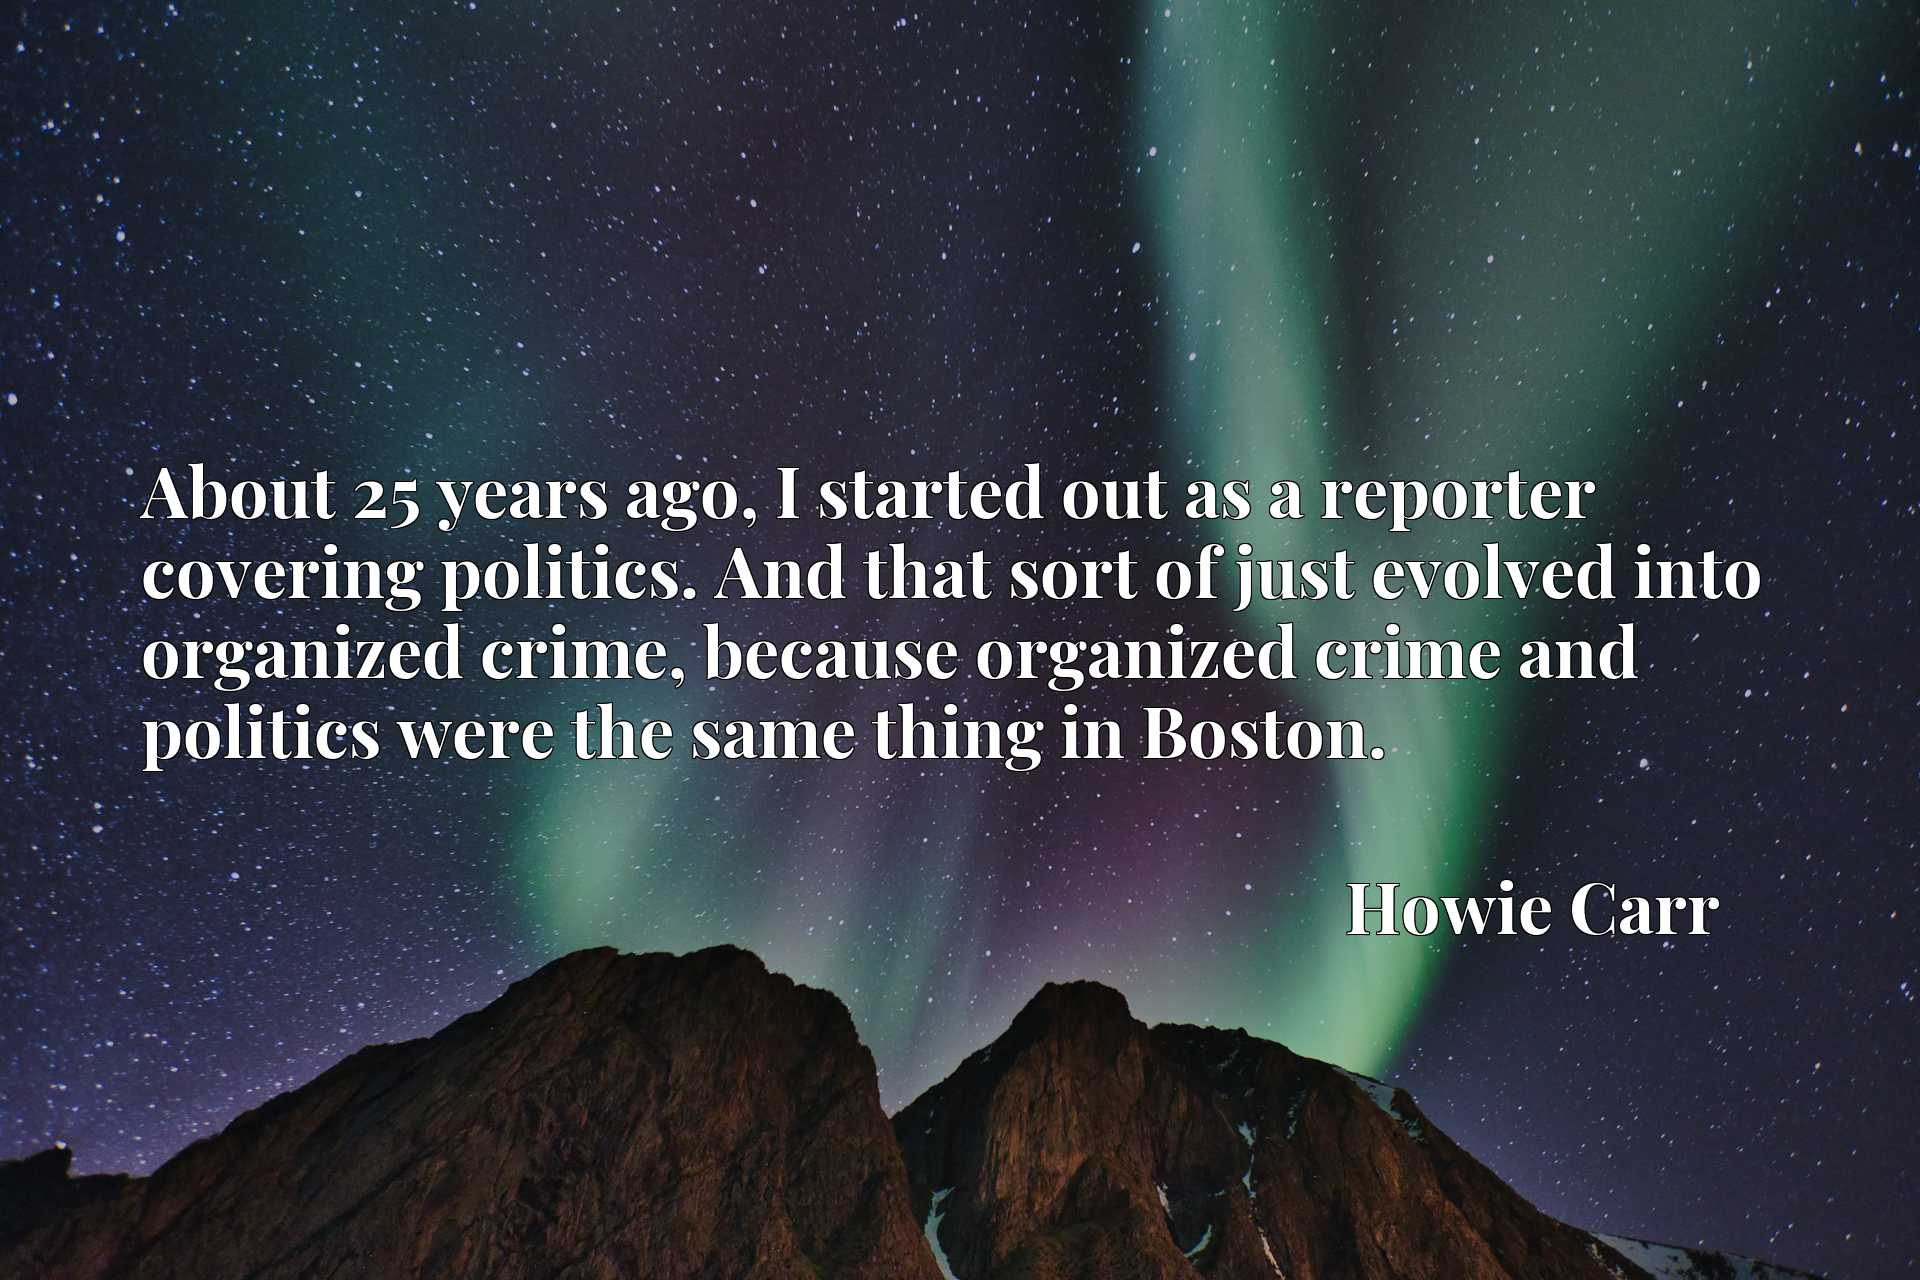 About 25 years ago, I started out as a reporter covering politics. And that sort of just evolved into organized crime, because organized crime and politics were the same thing in Boston.